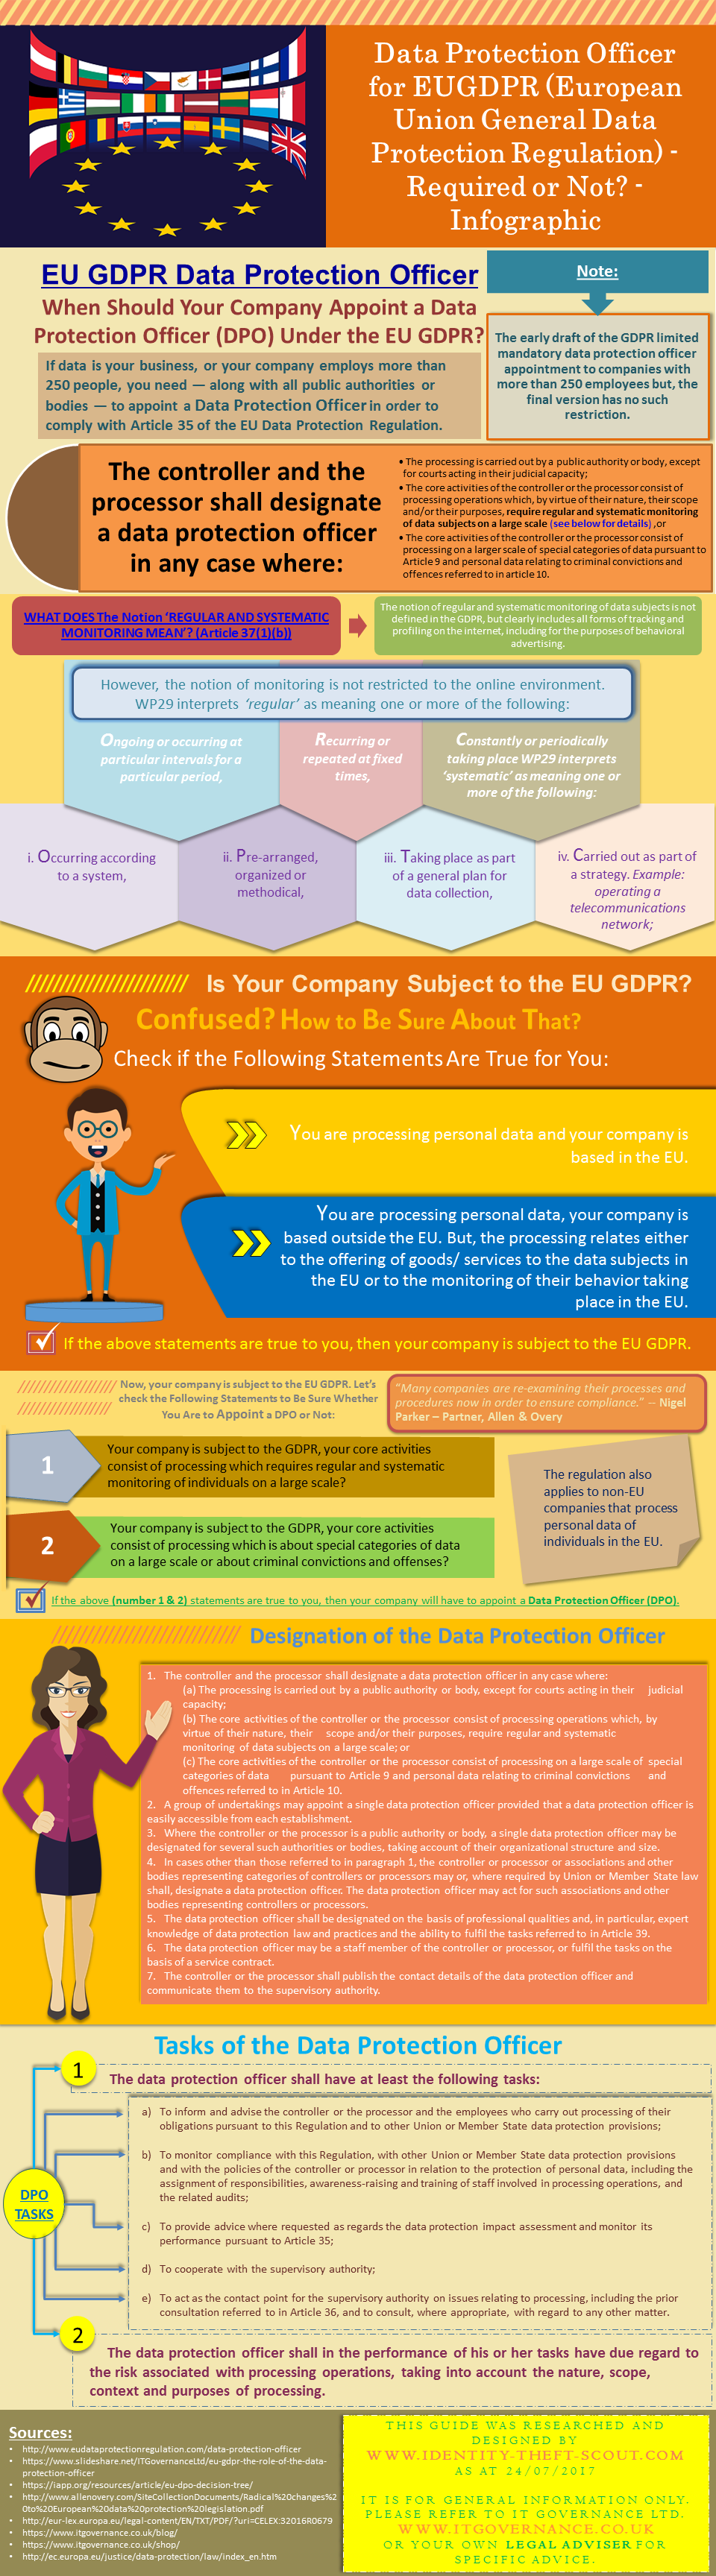 The Role of a Data Protection Officer (DPO) under EUGDPR